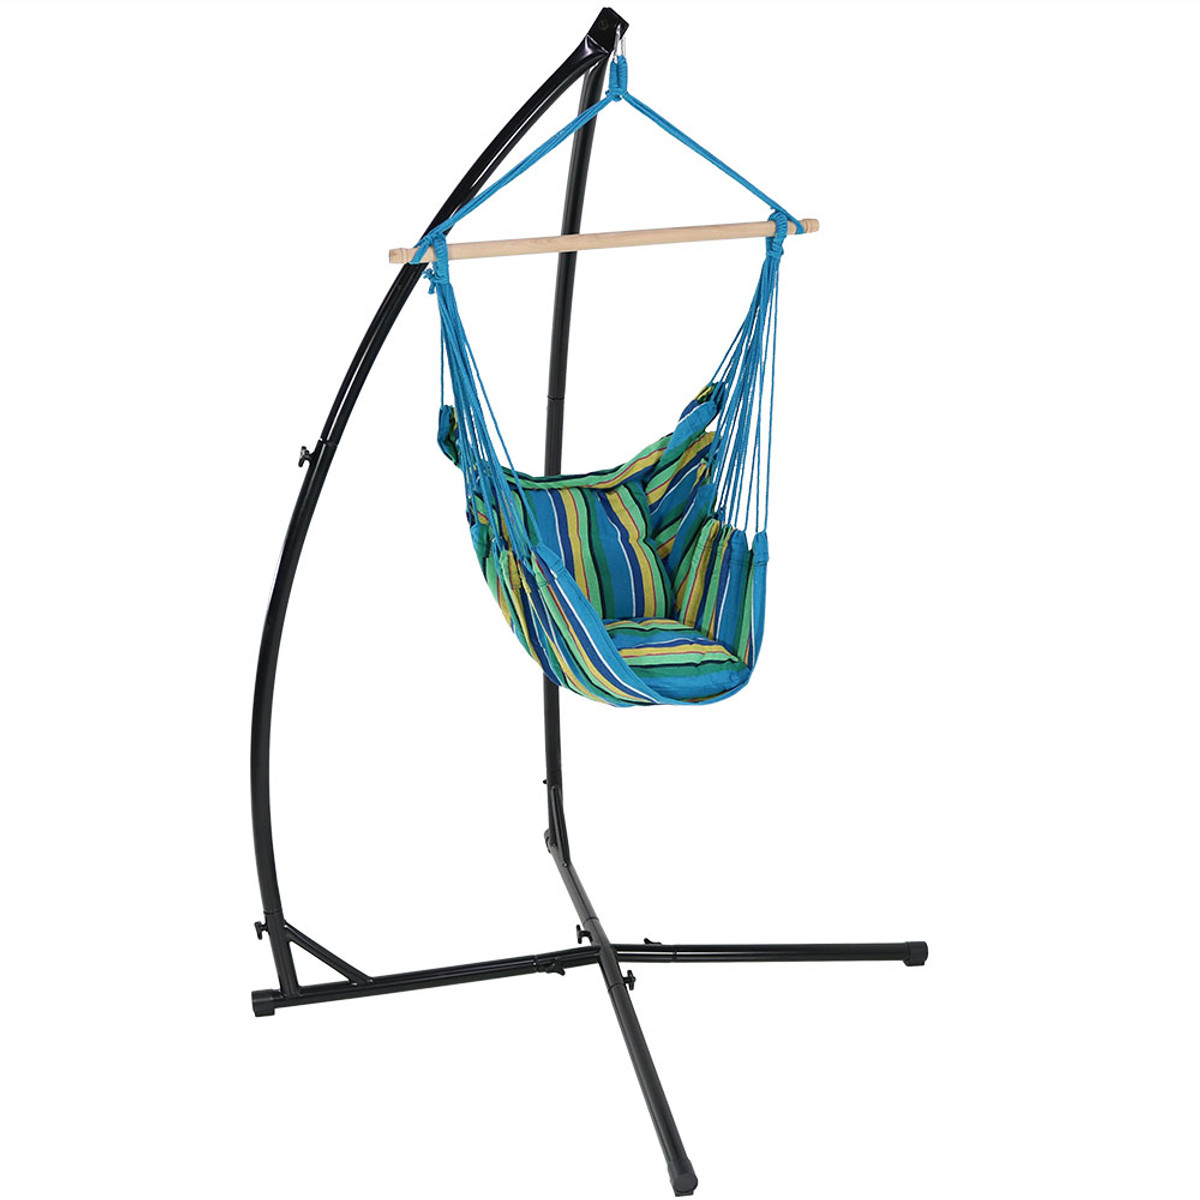 Indoor Hanging Chair With Stand Sunnydaze Hanging Hammock Swing With Two Cushions And